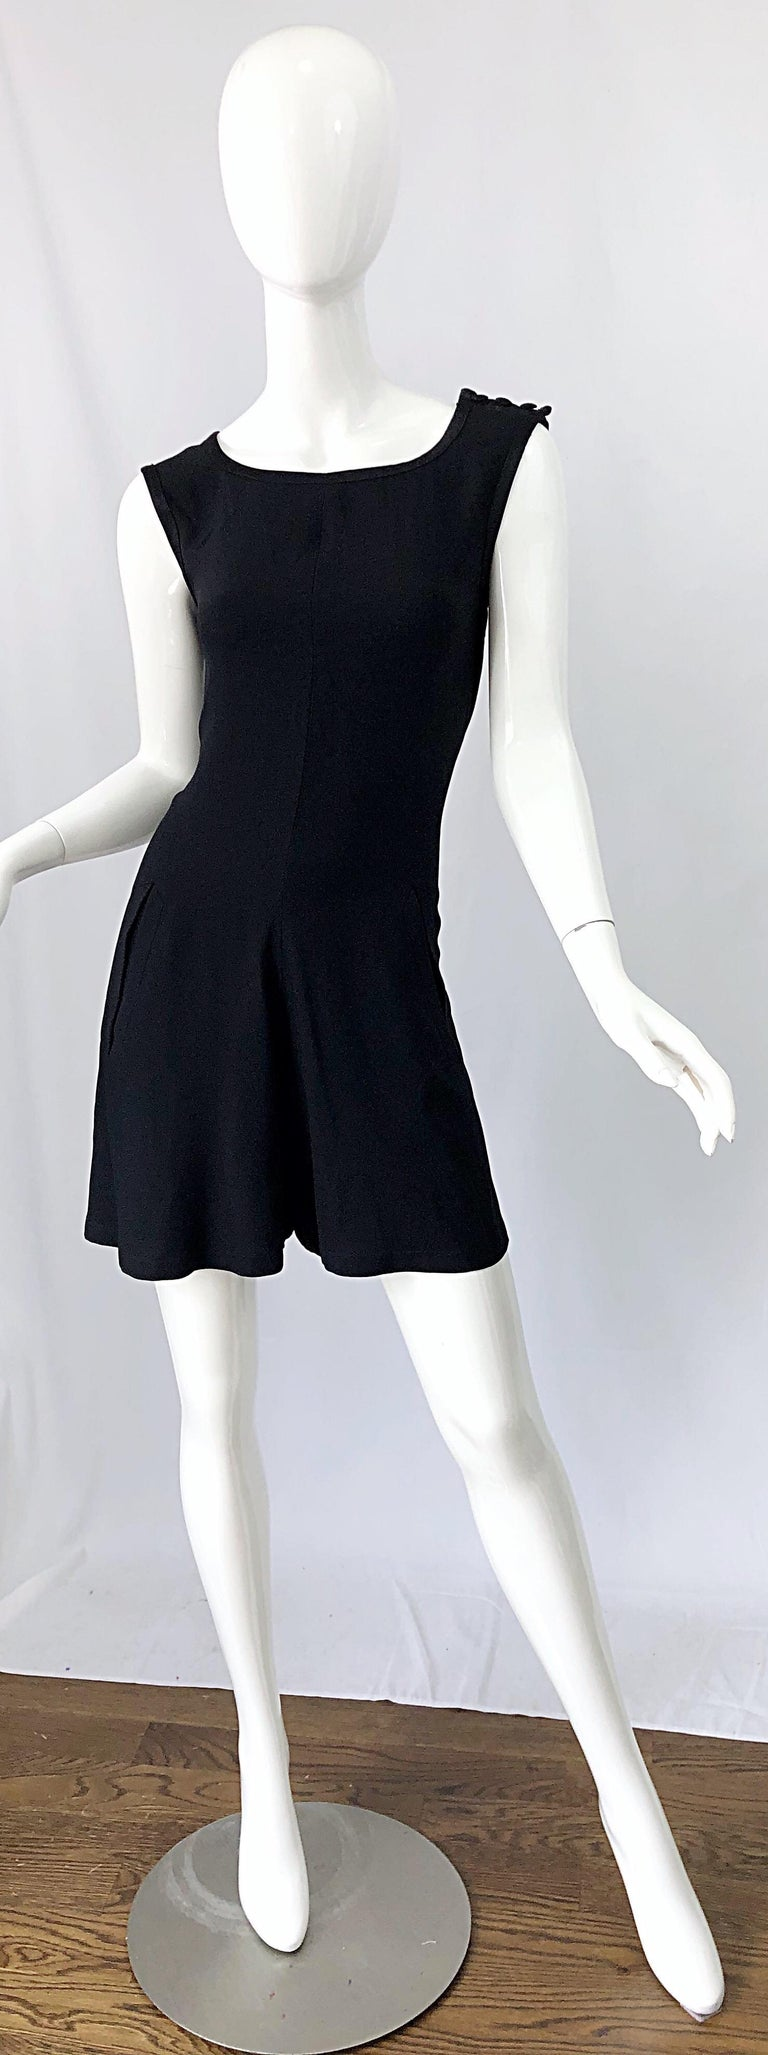 Vintage Yves Saint Laurent Romper Black Rayon Sleeveless 1990s One Piece 90s  For Sale 10